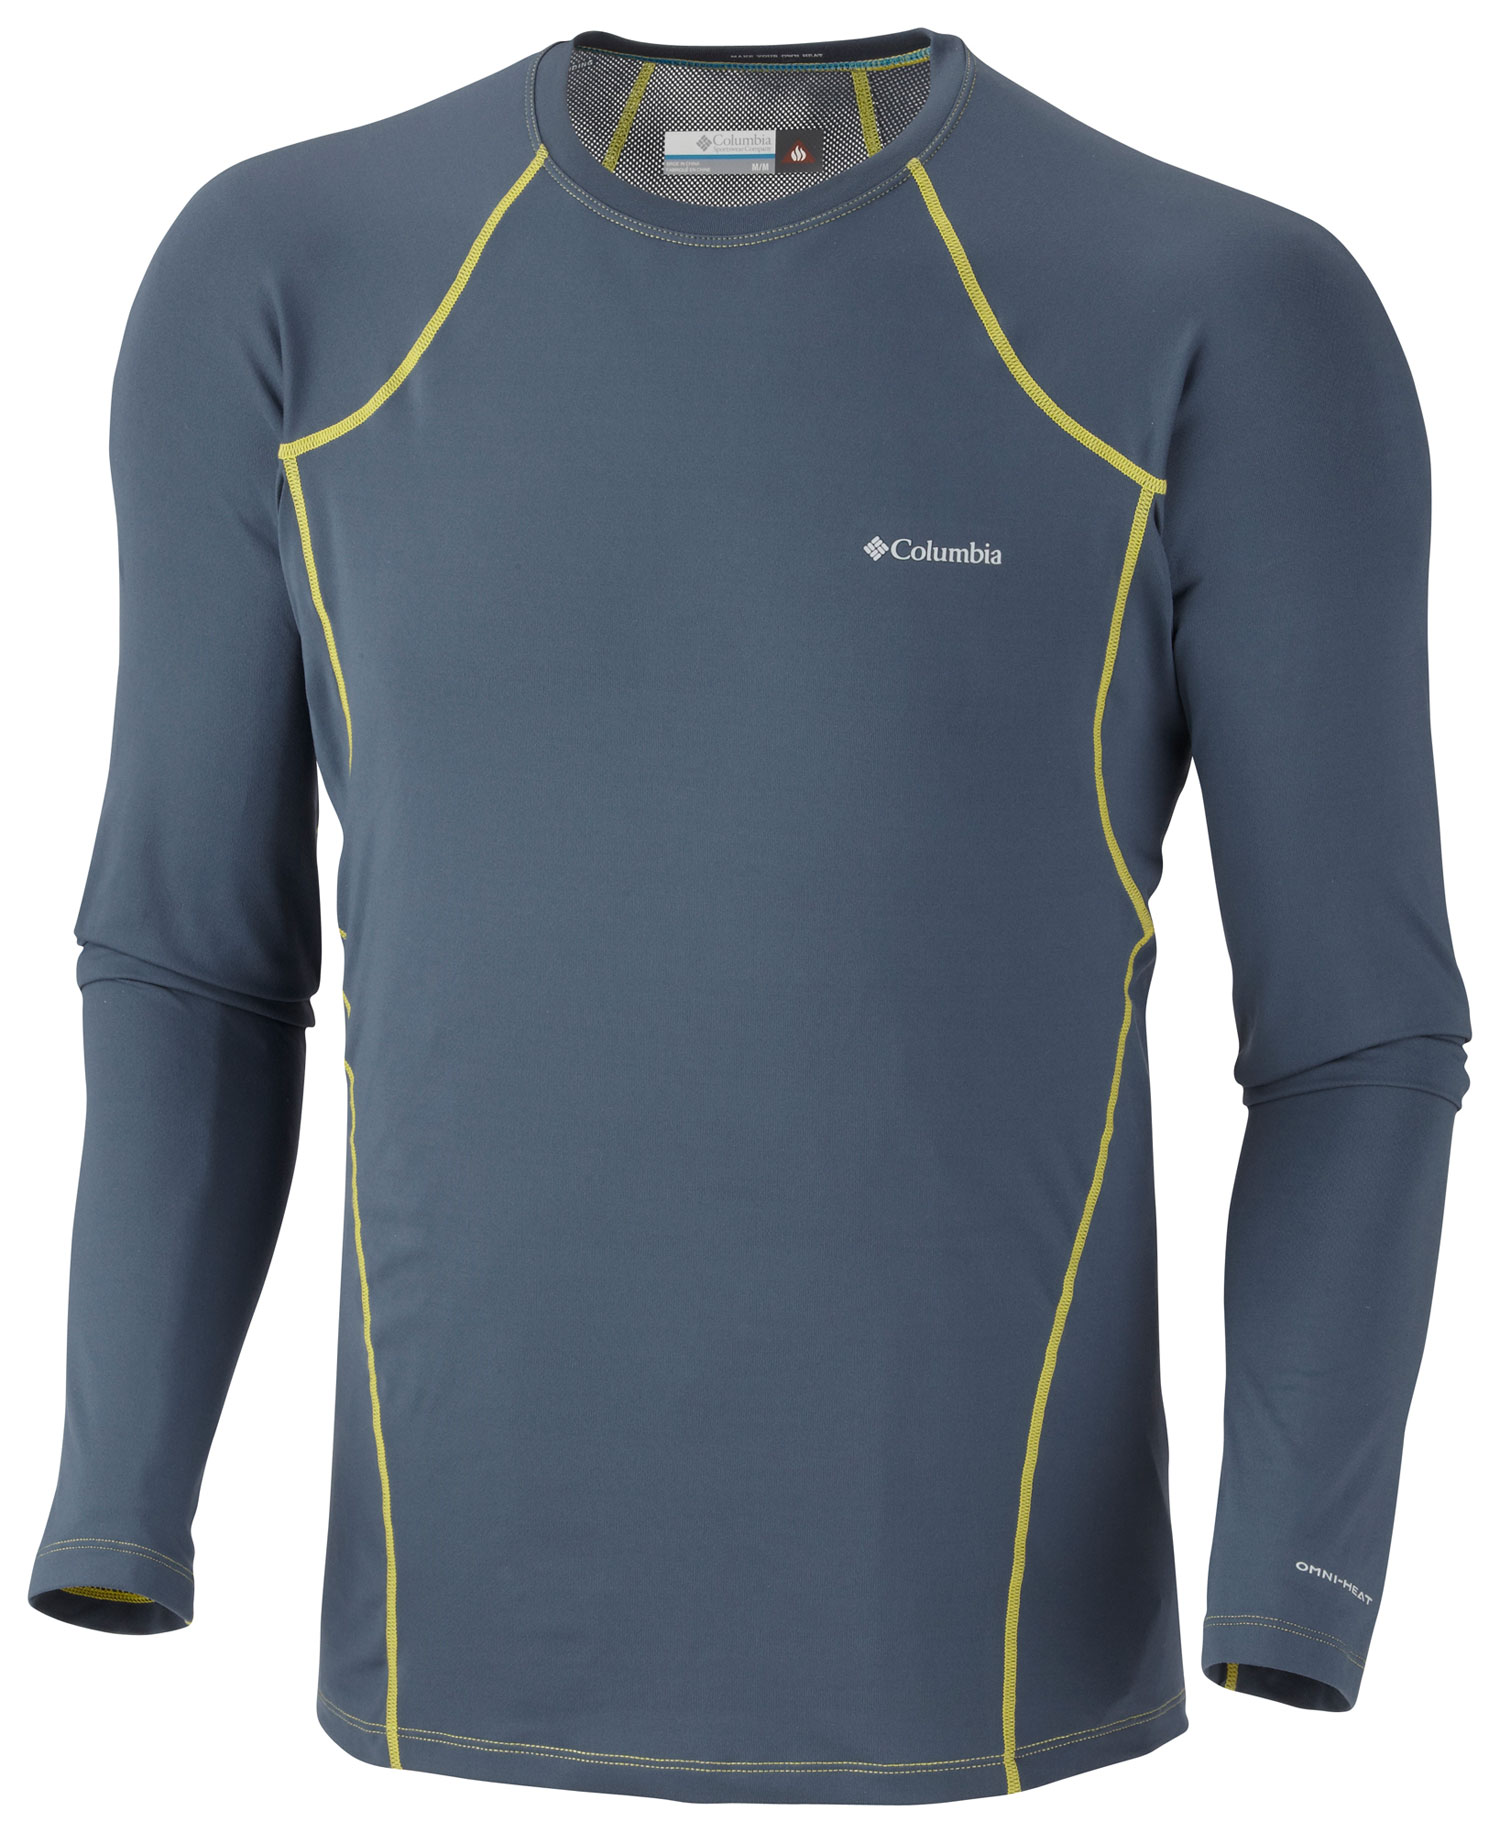 The Columbia Baselayer Midweight is a sleek, comfortable and highly functional piece of clothing that will be appreciated in the backcountry. How  Well, for starters it features Omni technology. That's right, technology in a garment. First, it has Omni-wicks throughout. That gathers up sweat and allows it to evaporate. Then there is the lining. Featuring Omni-Heat reflectors, this stuff keeps the sun from overheating the wearer. It is also antimicrobial, so there is no worry about contracting a rash or fungus as backcountry trails are conquered in the Columbia Midweight top.  FABRIC 85% polyester/15% elastane sweet rev.   FIT Performance   Omni-Heat thermal reflective   Omni-Wick   Breathable   Antimicrobial   4-way comfort stretch   Ergonomic seaming - $24.95